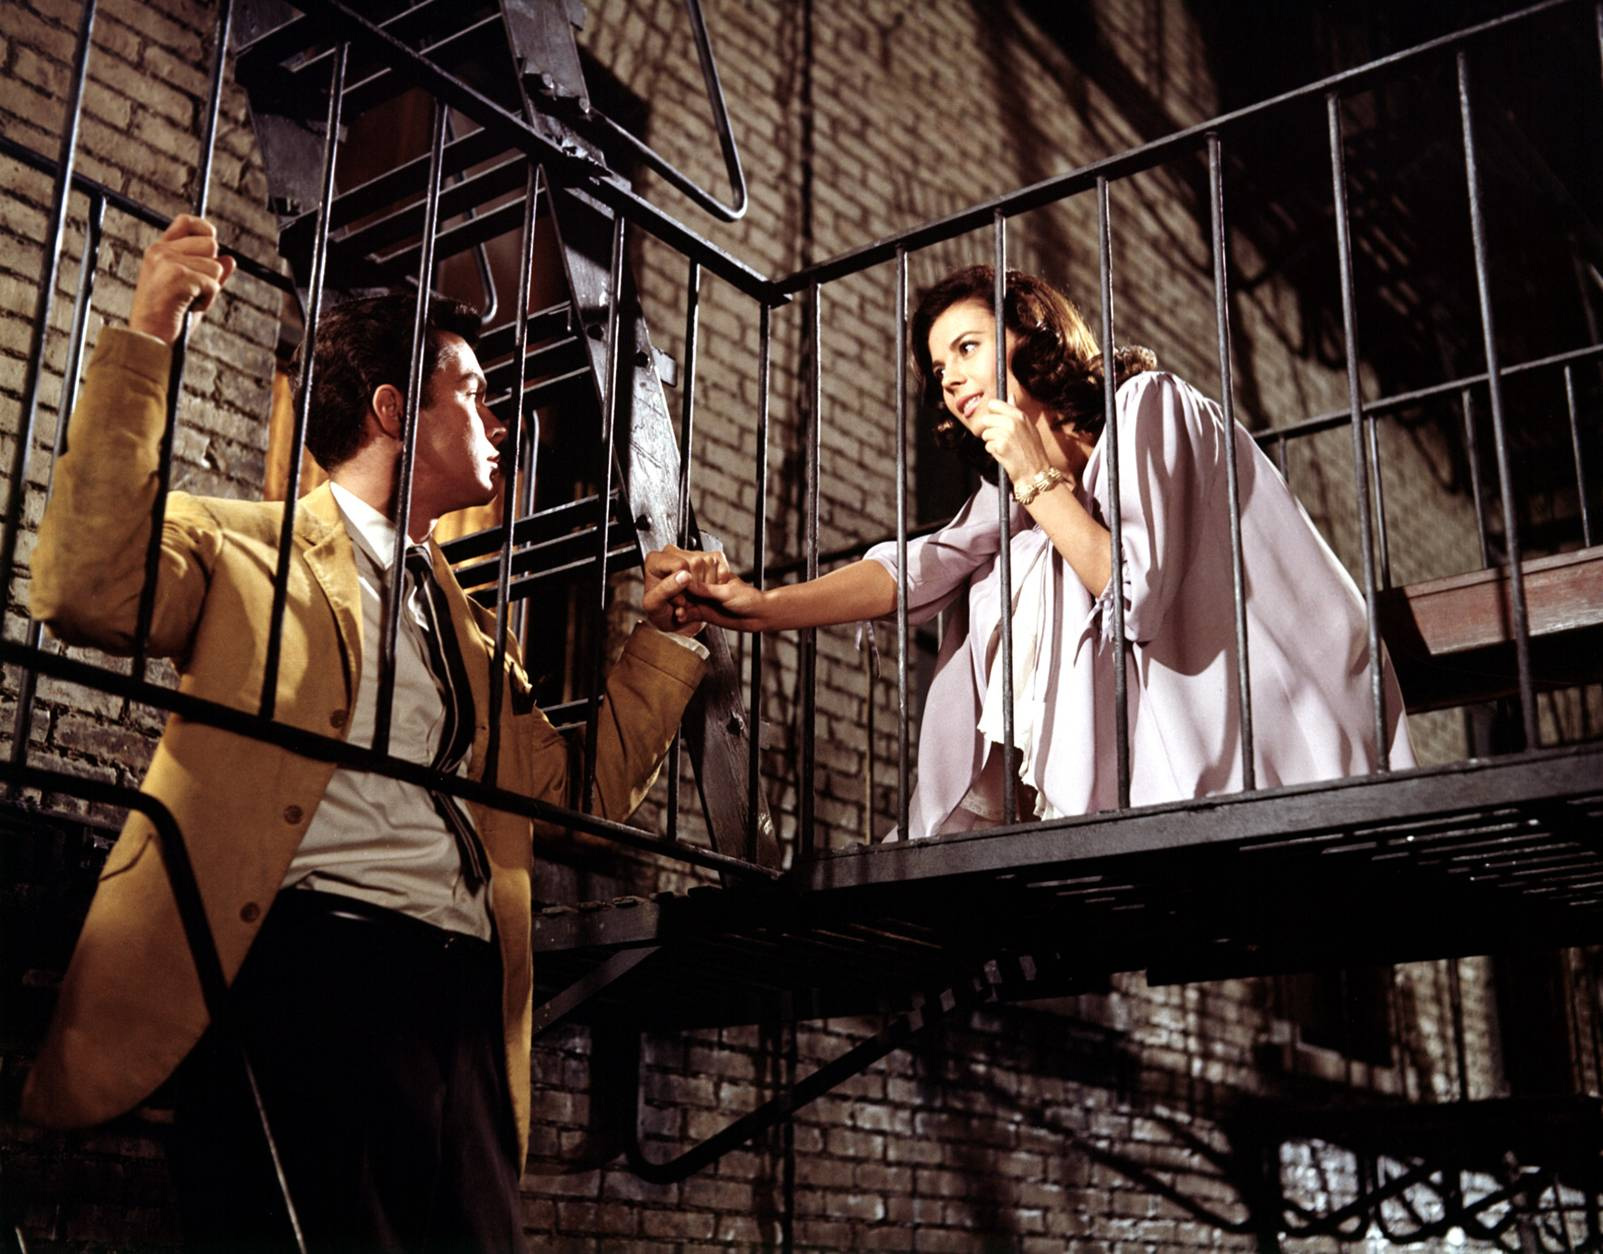 West side story west side story photo 27587963 fanpop for The balcony film